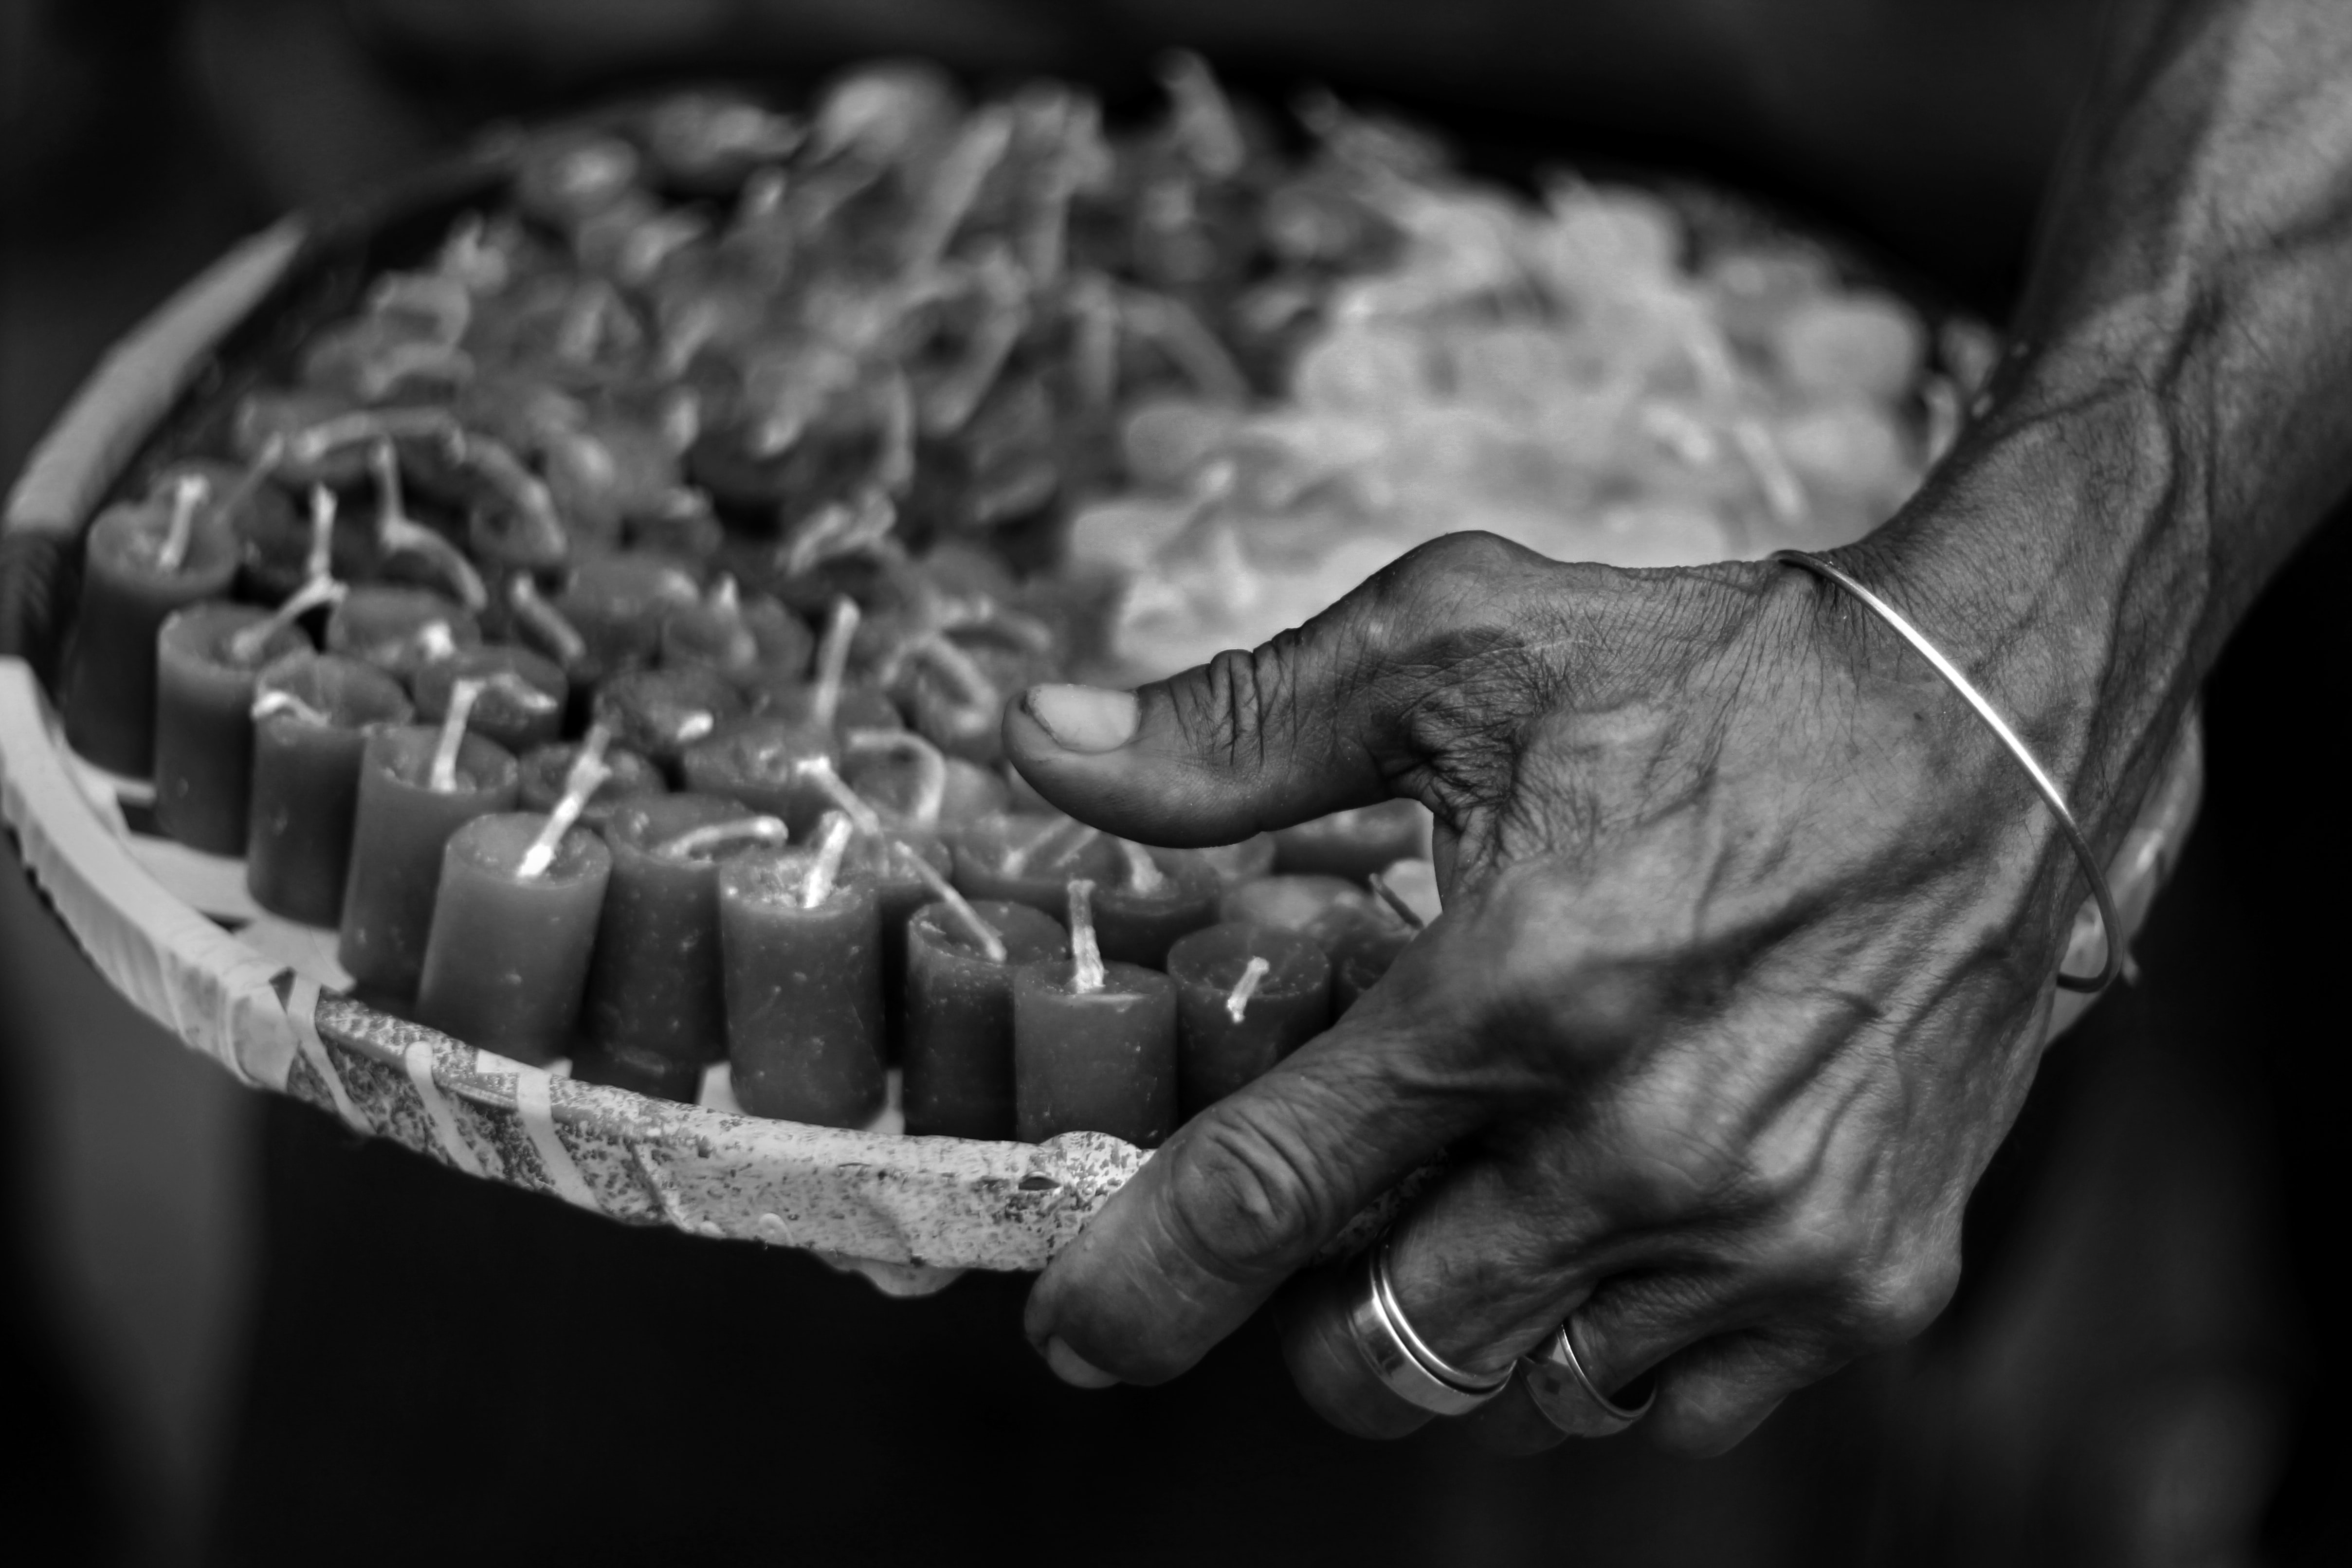 grayscale photography of person holding tray with candle lot